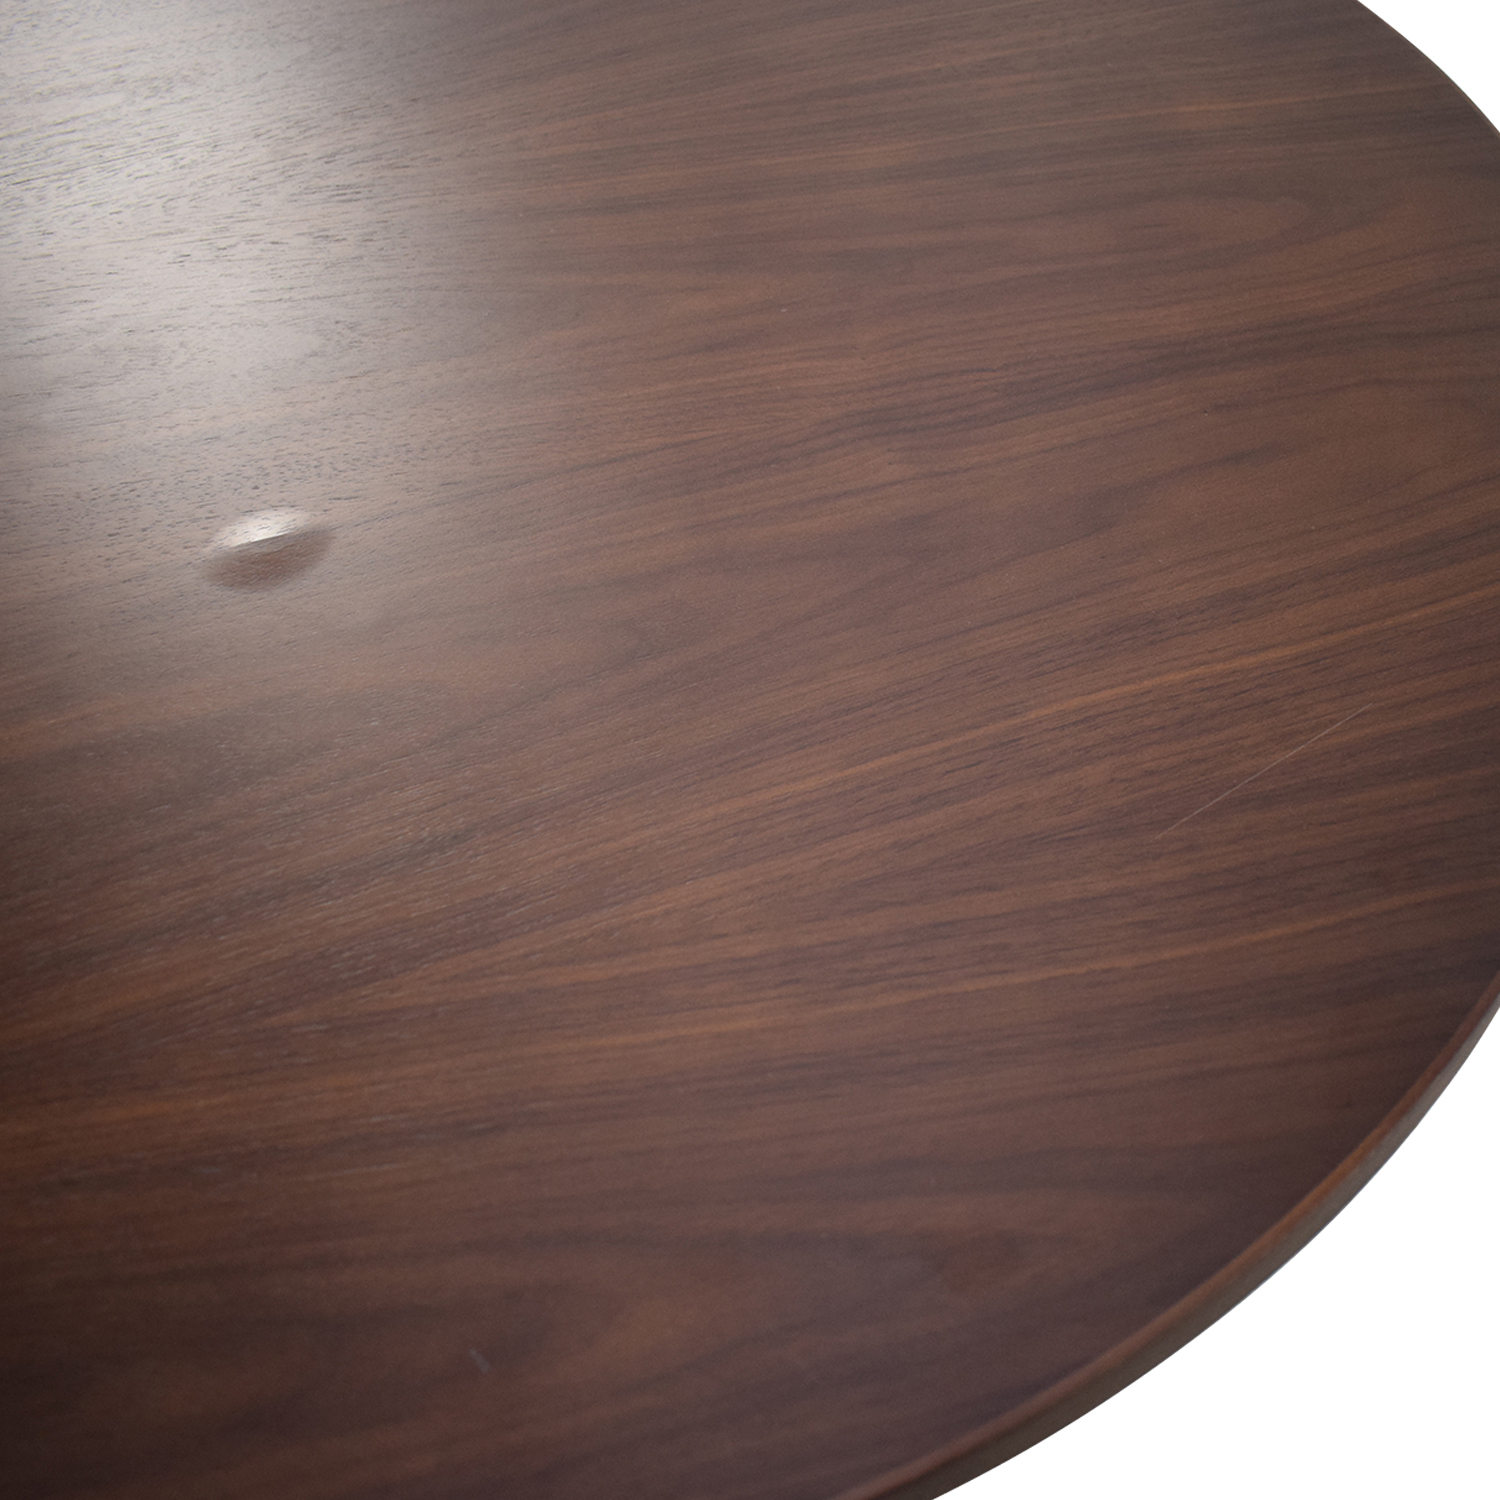 Control Brand Control Brand Sean Dix Mid Century Dining Table dark brown & black